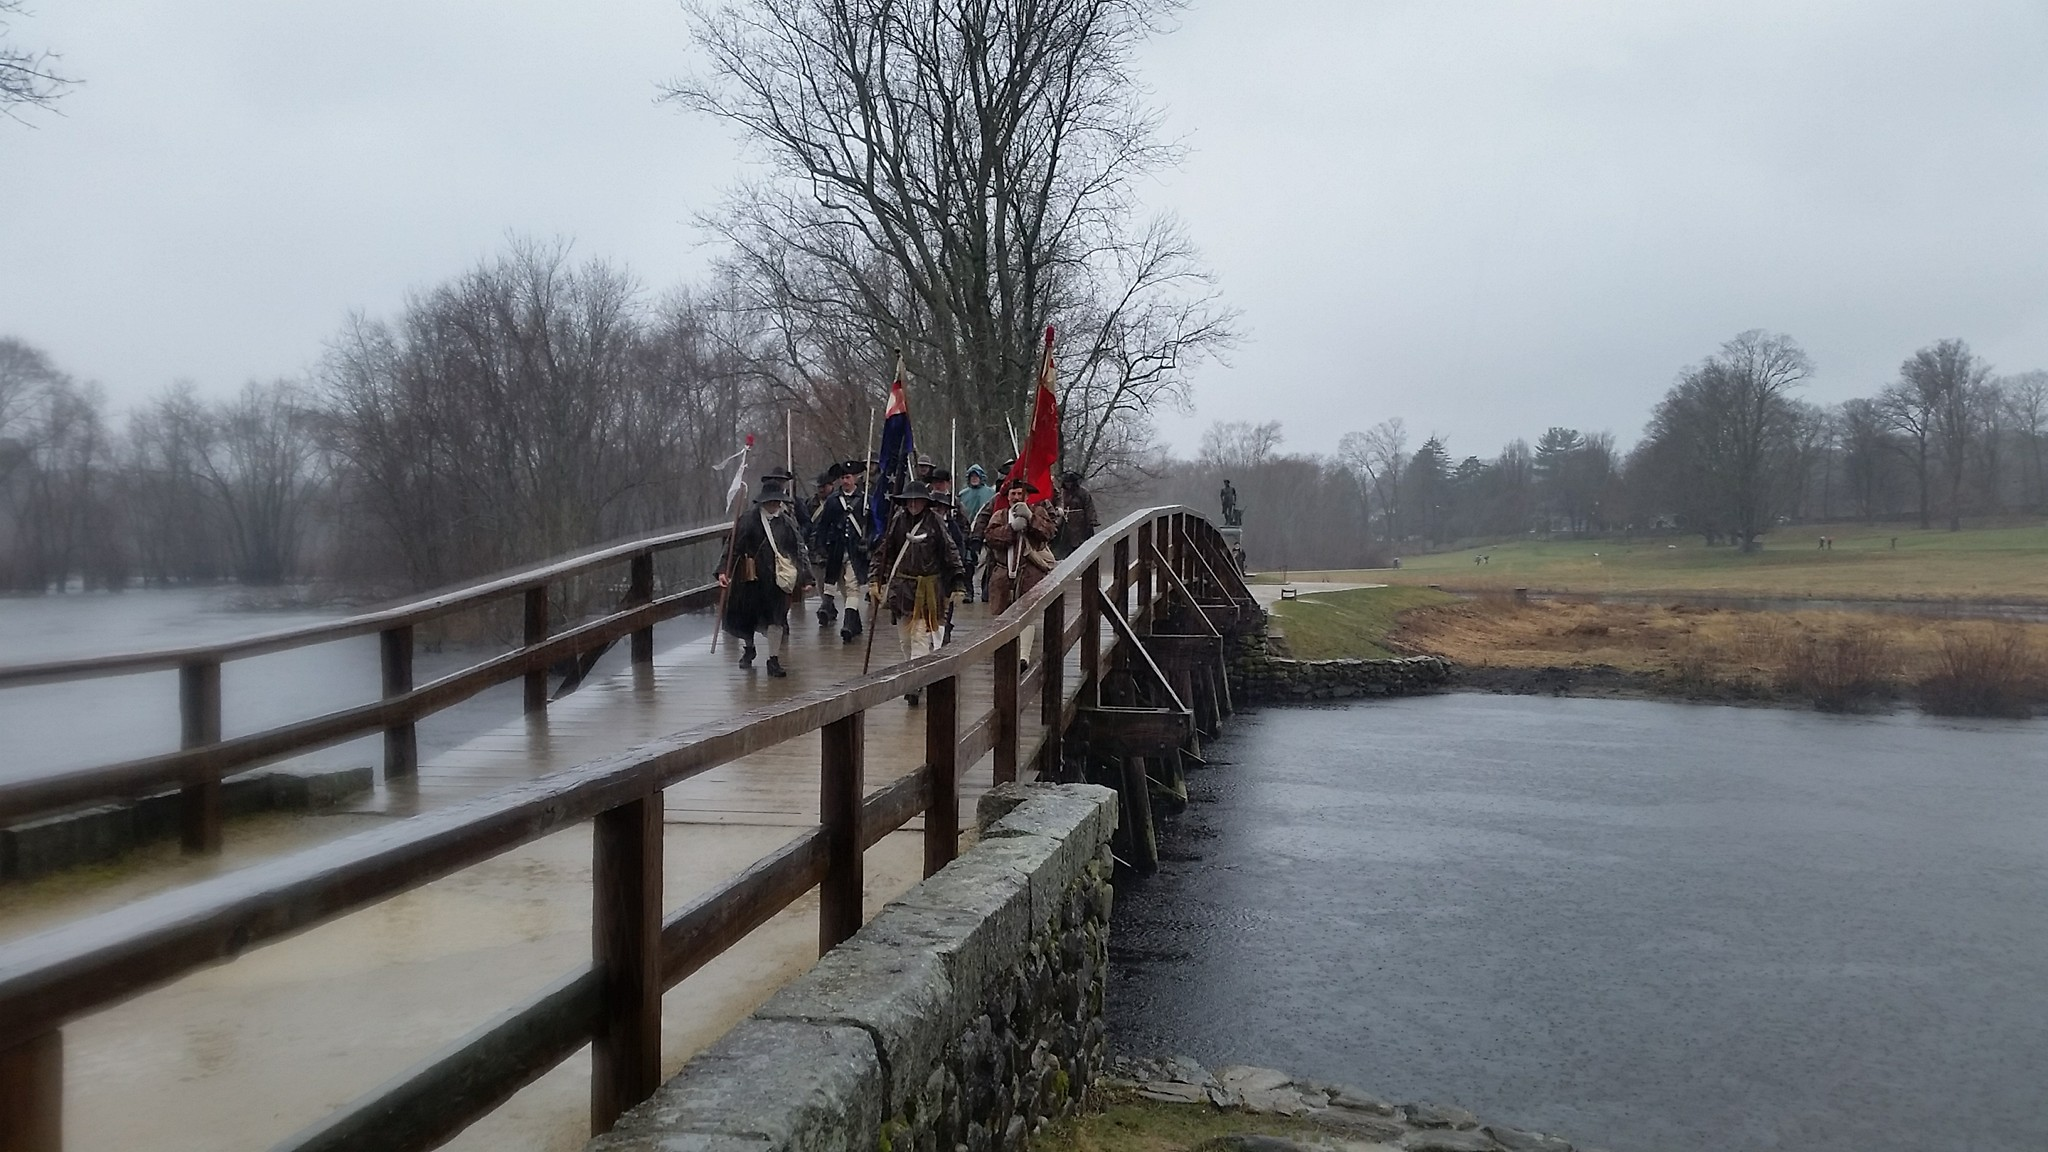 2018 Trail March (crossing North Bridge)